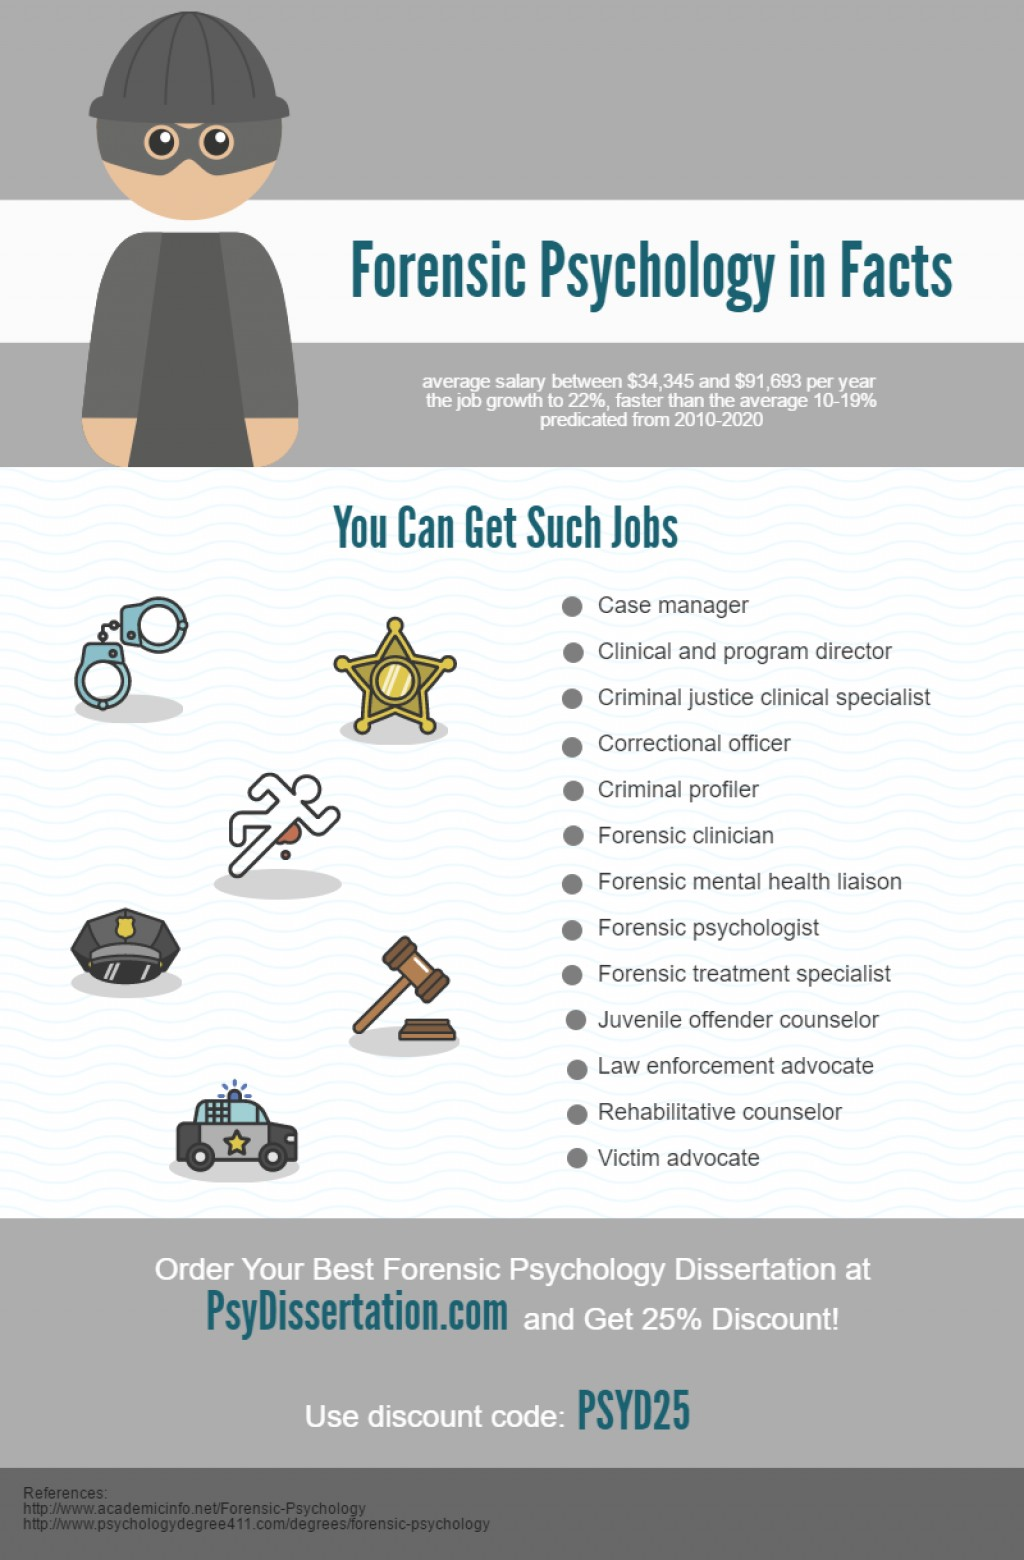 001 Forensic Psychology In Facts Research Paper Topics Unique For Large